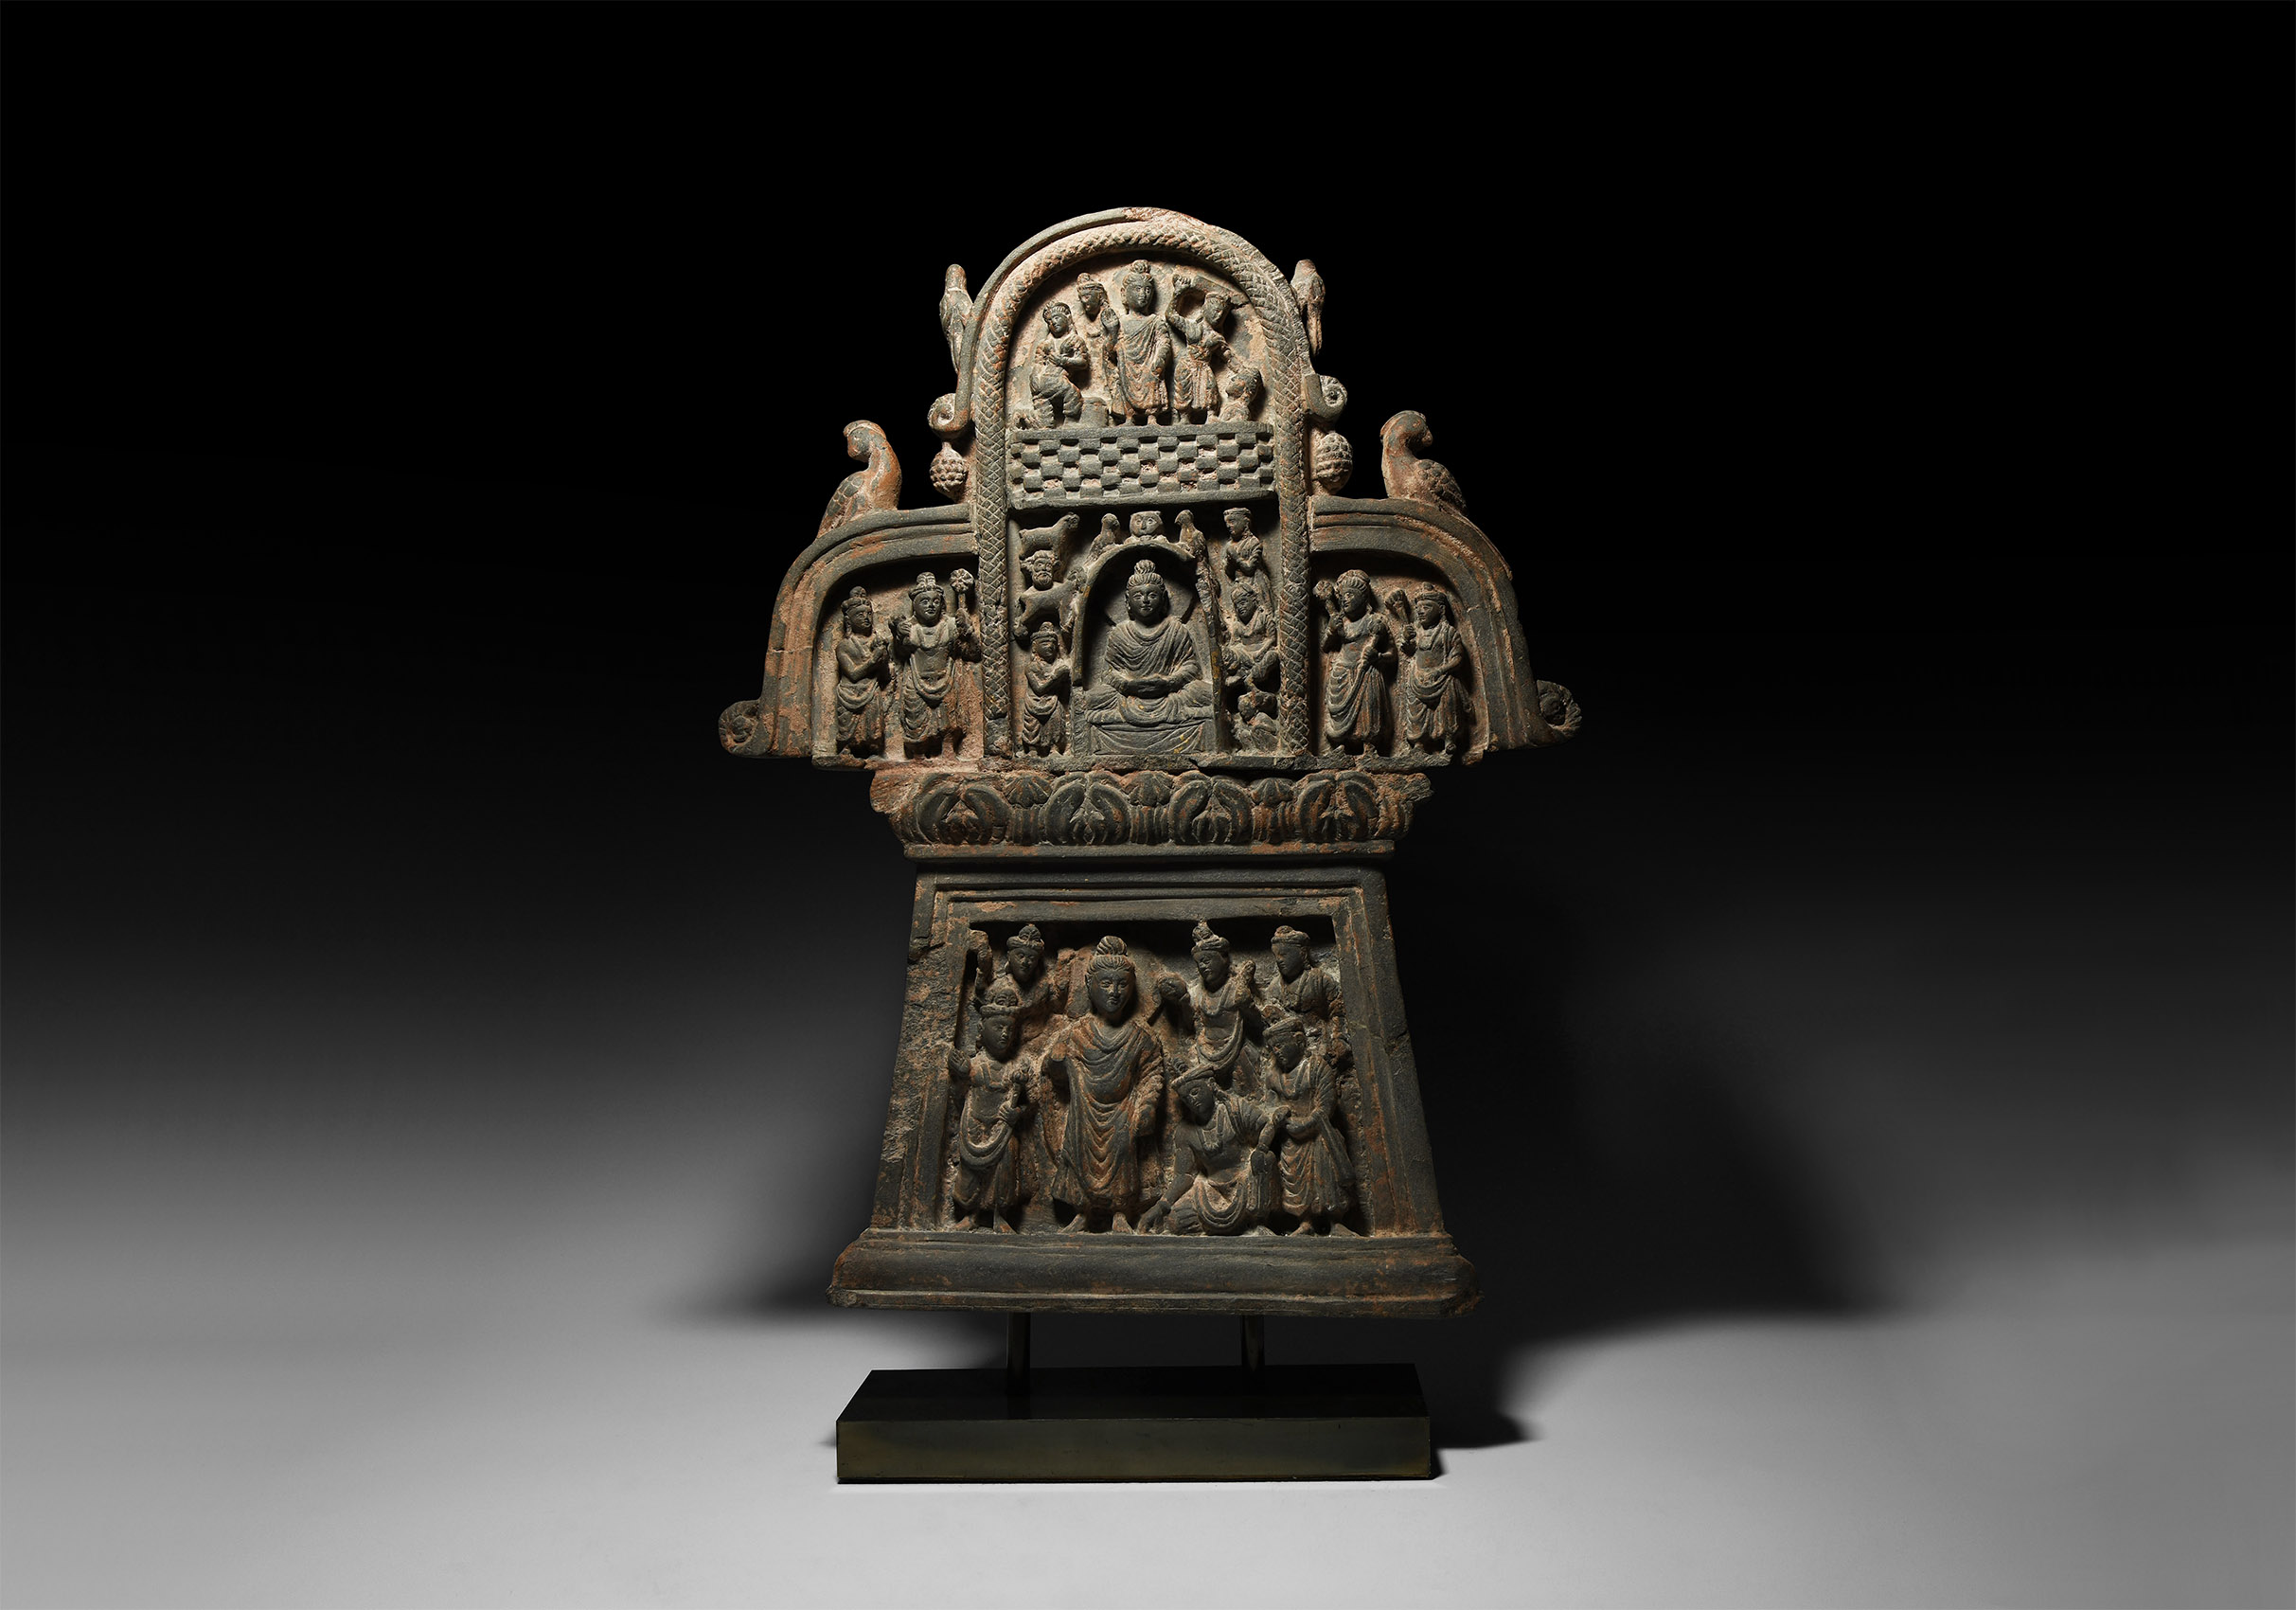 Lot 371 - Gandharan Frieze Panel with Buddha and Attendants